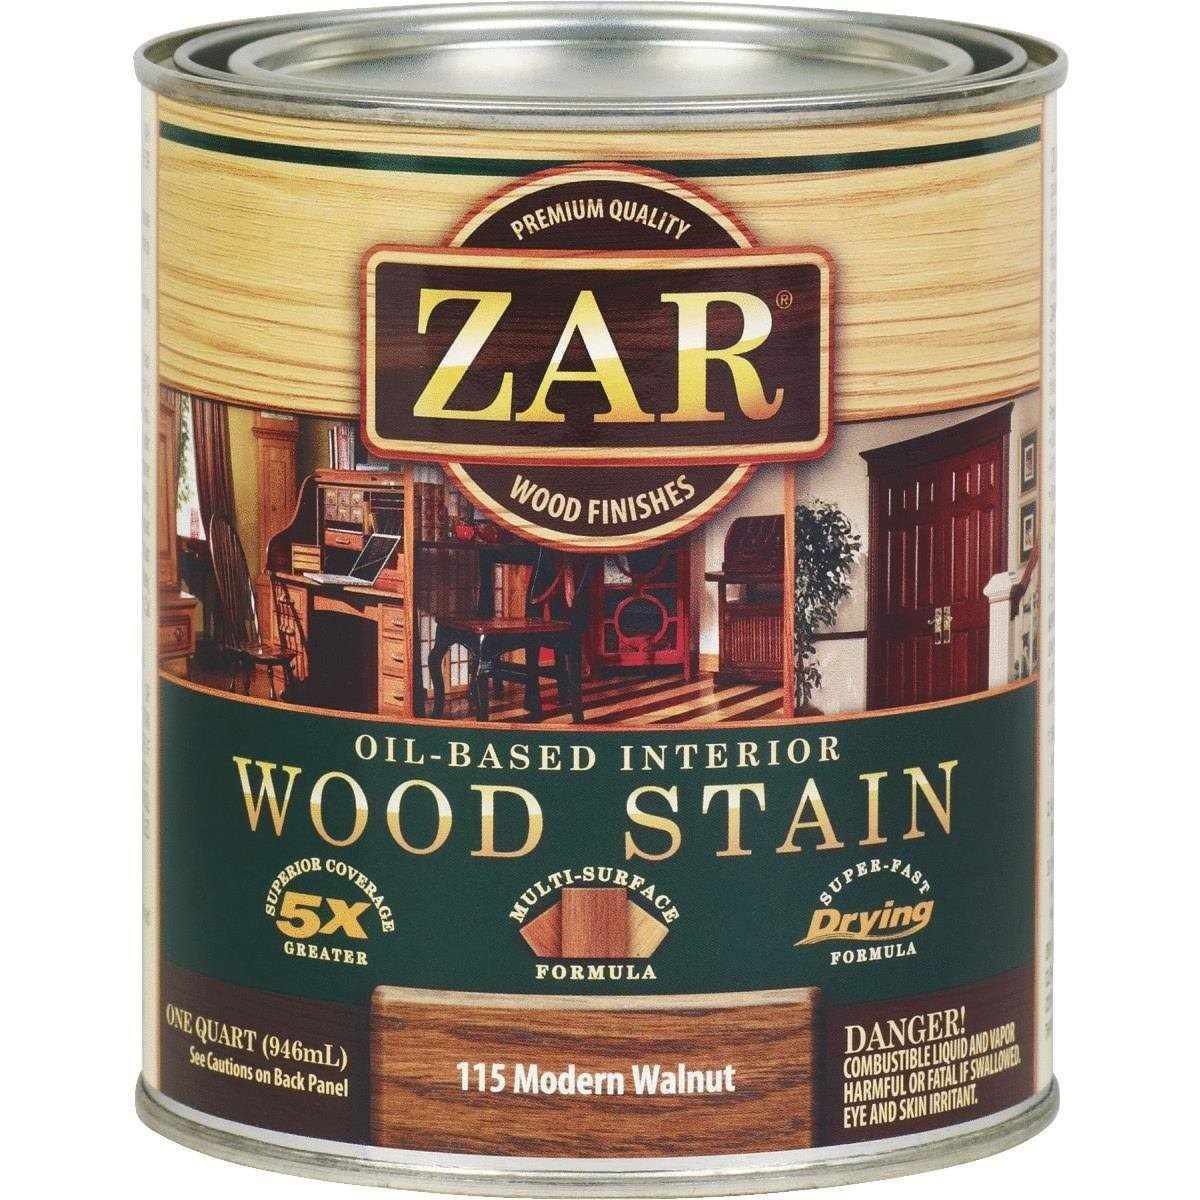 Zar Interior Oil Based Wood Stain - 115 Modern Walnut, 1 Quart